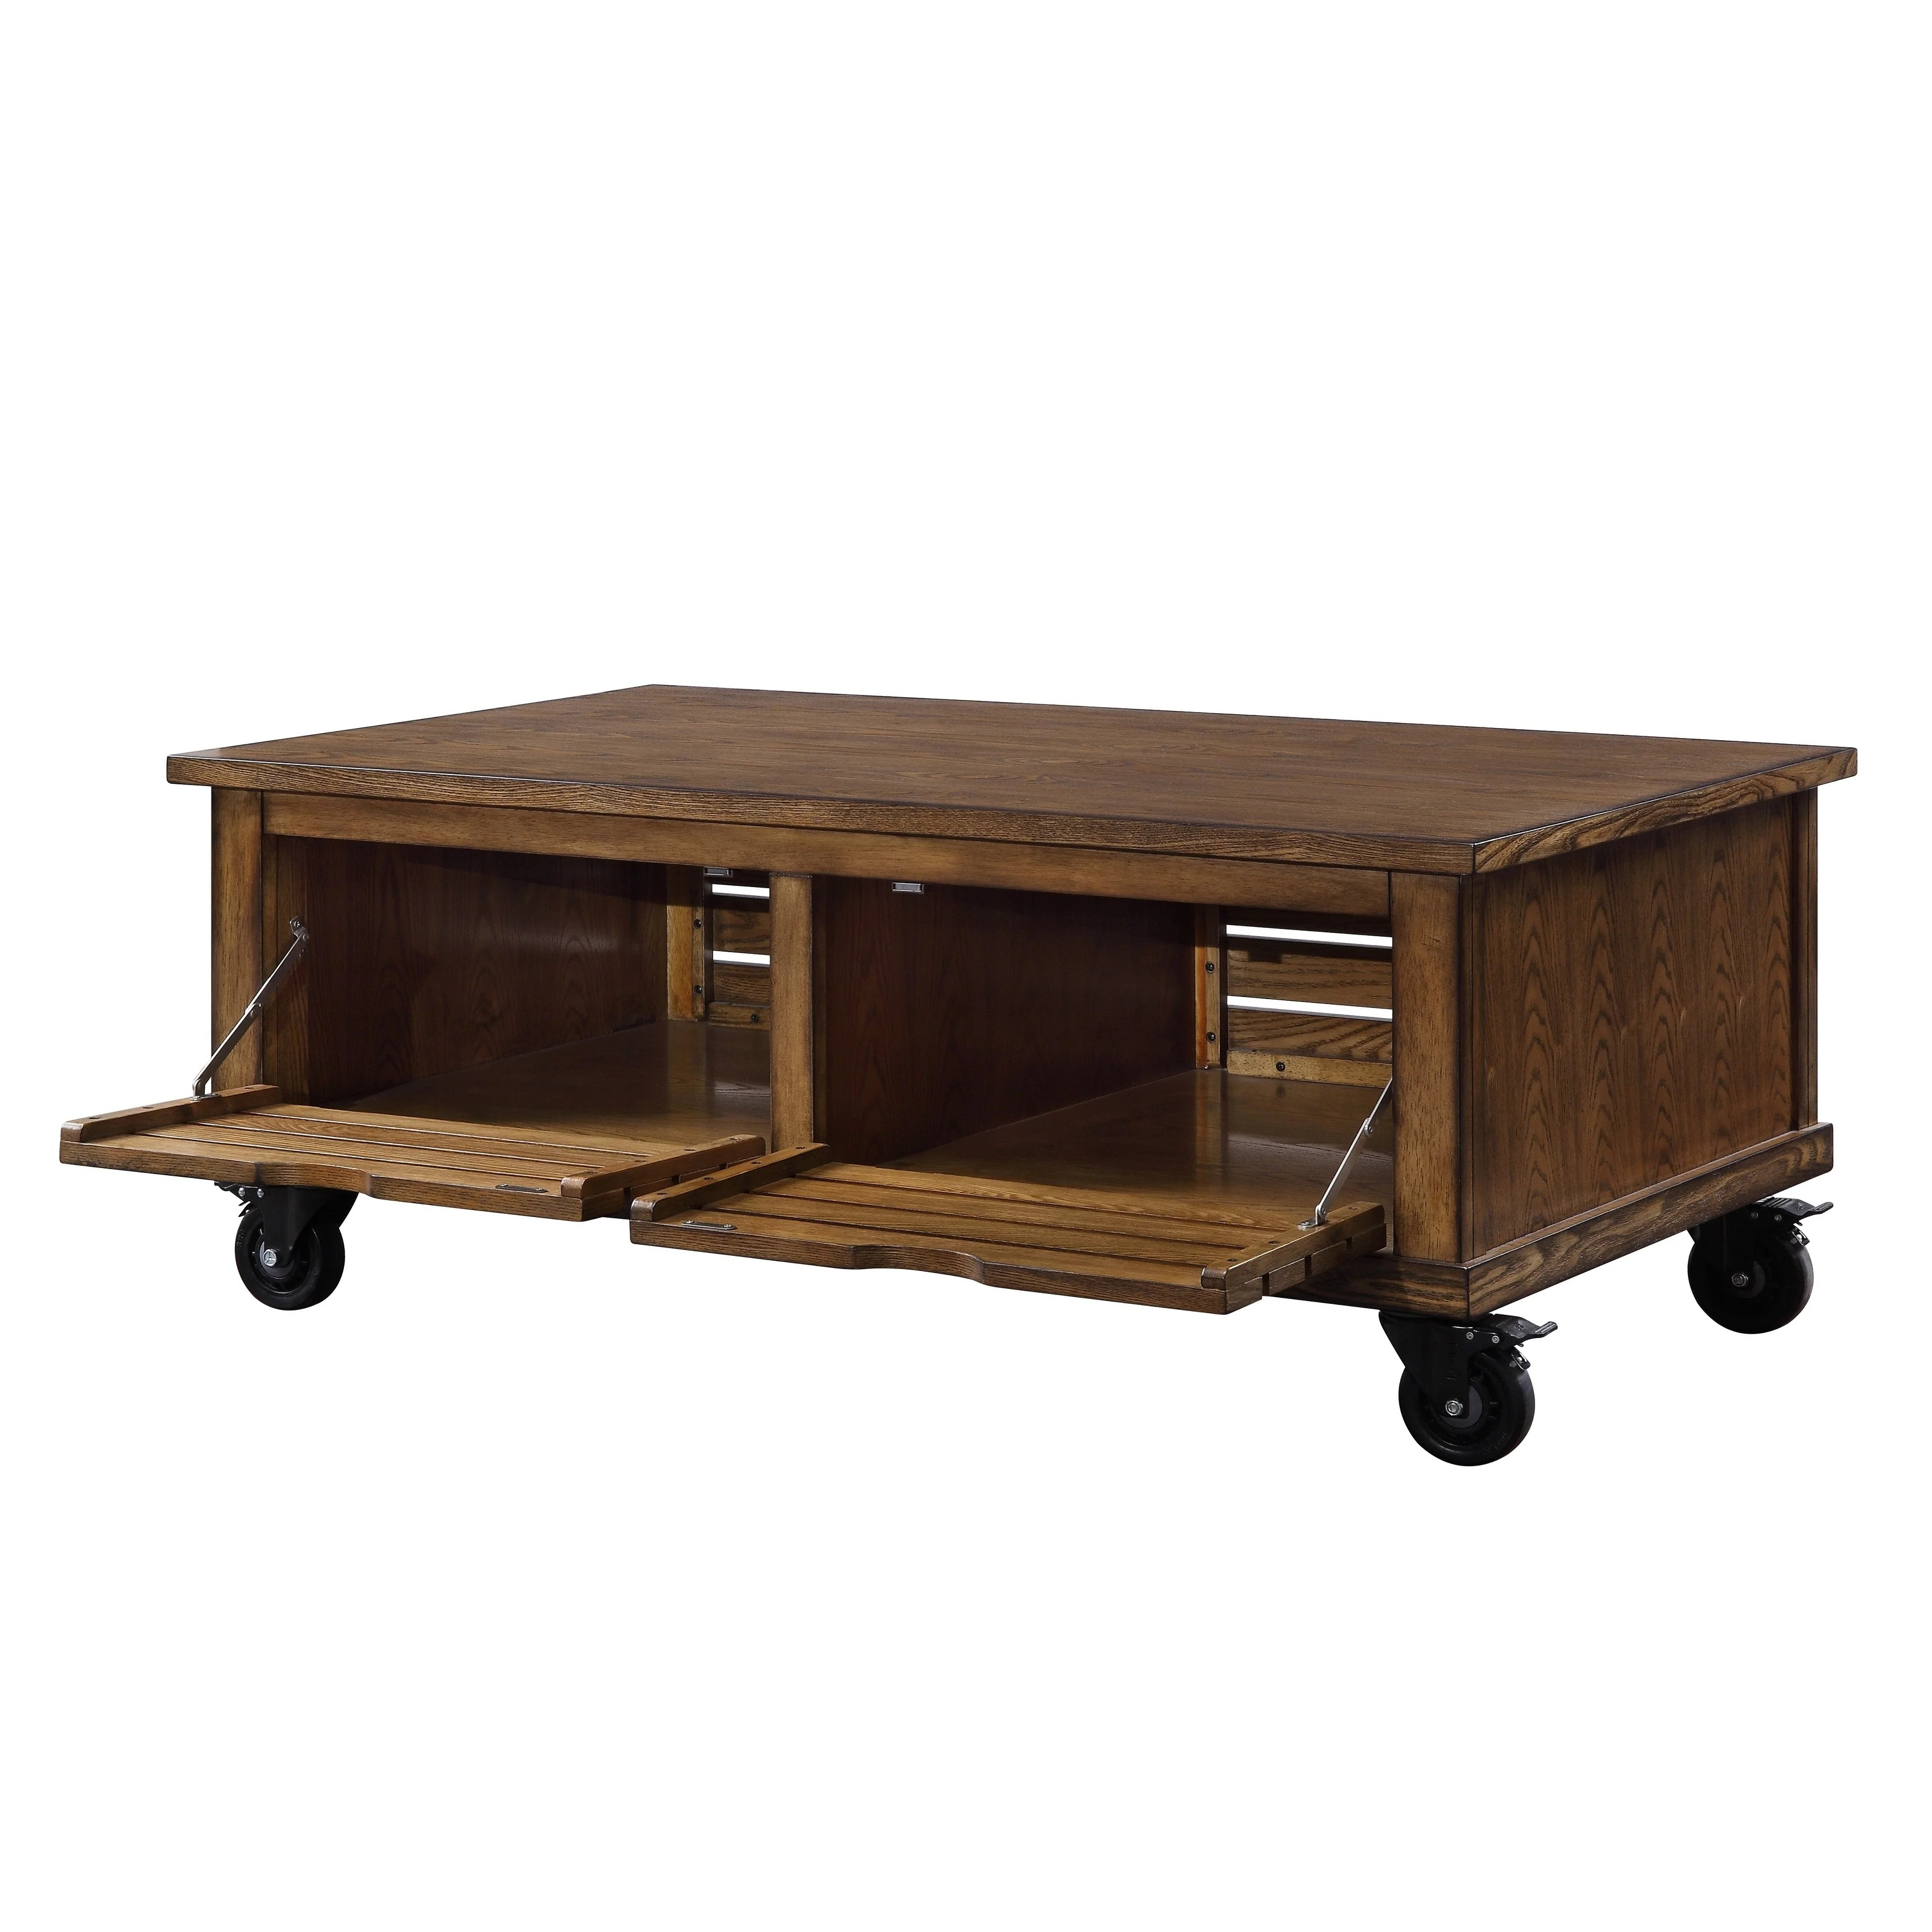 wooden coffee table with drop down storage and caster wheels brown